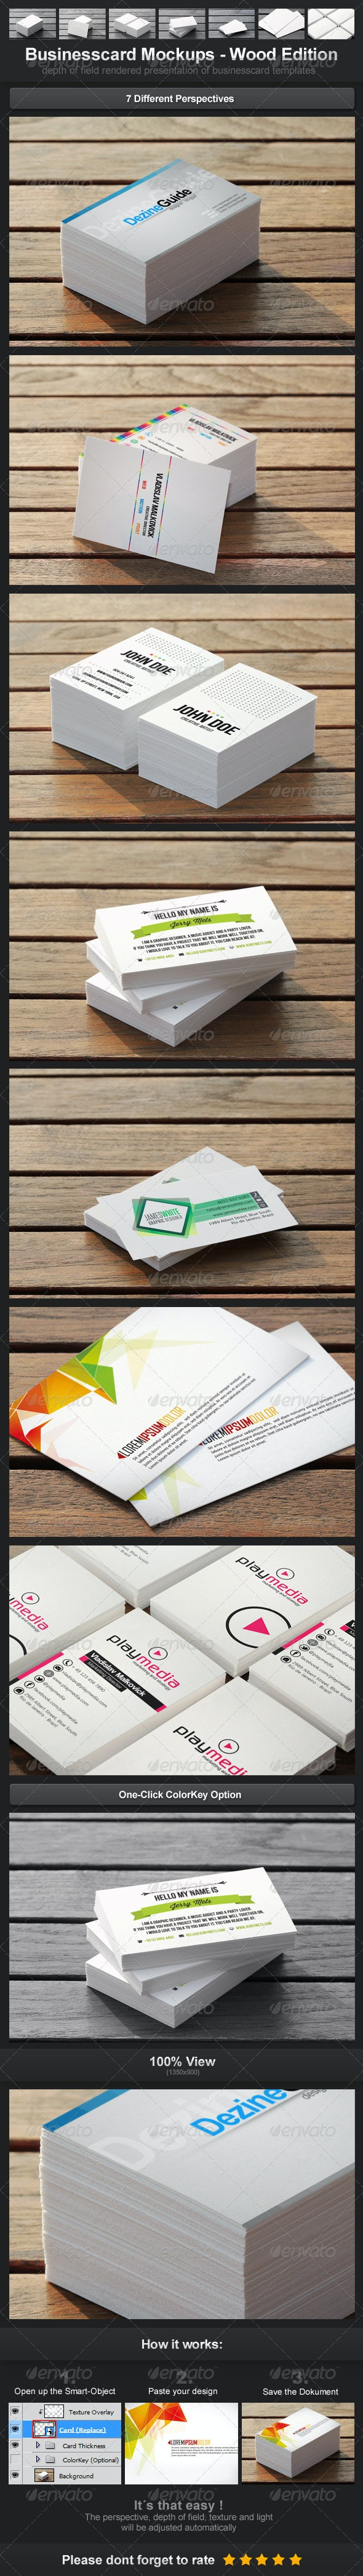 Businesscard Mockups - Wood Edition - Business Cards Print